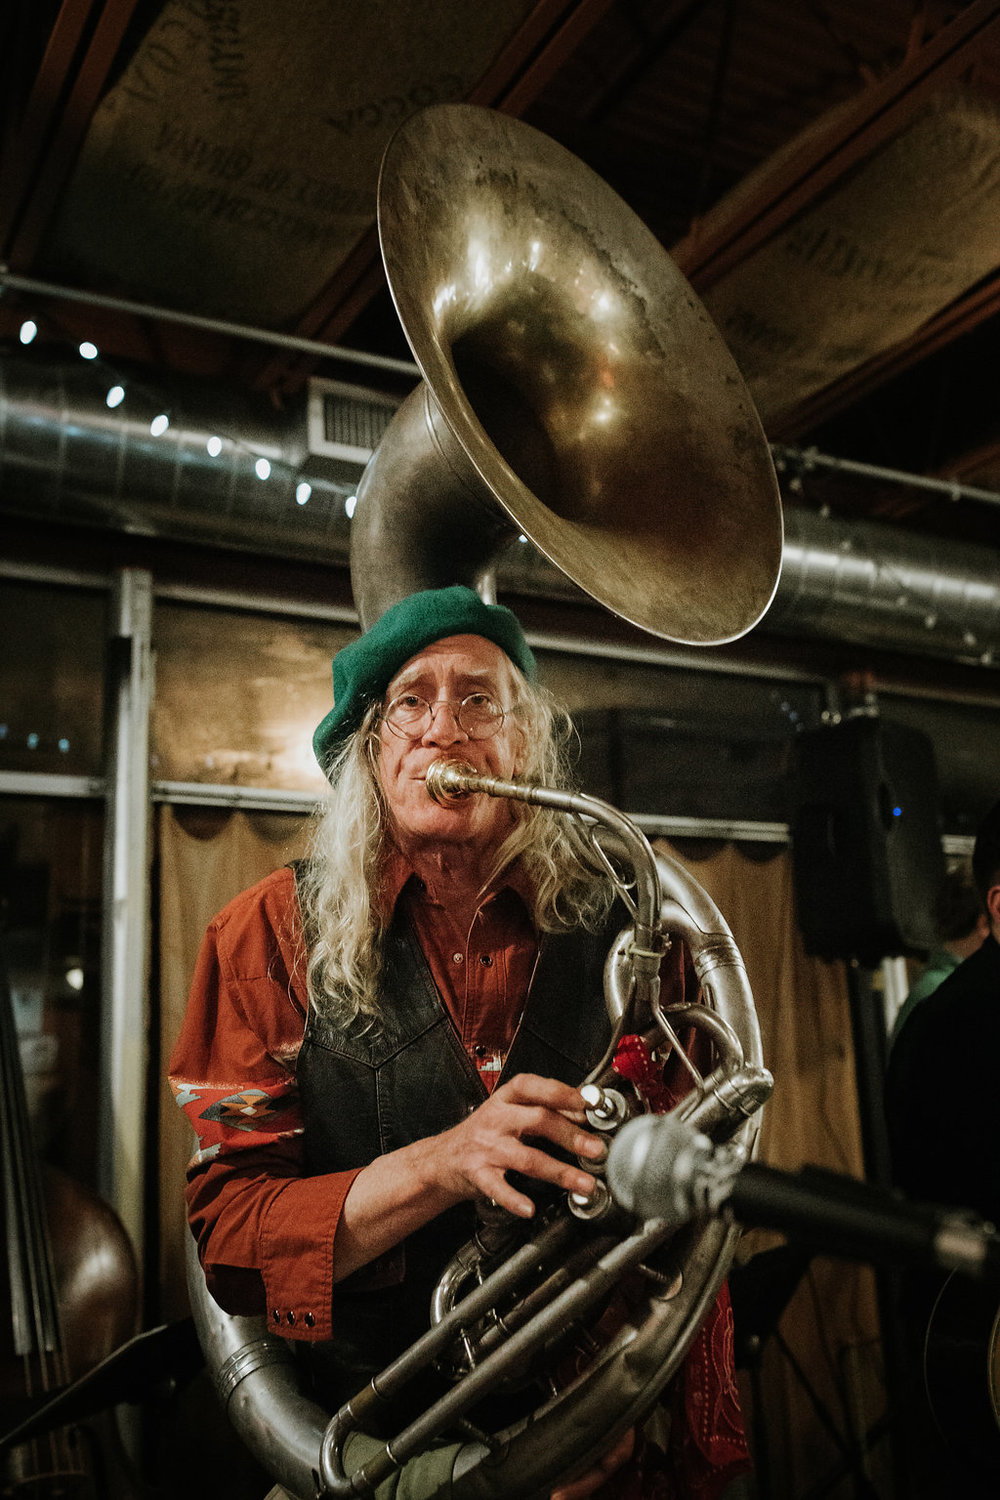 Meet The Tuba Man of Nolansville Pike, Nashville. The magic of Nashville has always been its big eclectic community of creatives — most of whom will never make it onto billboards.  Image: Jakob Lewis, producer of the NPR podcast Neighbors in Nashville.